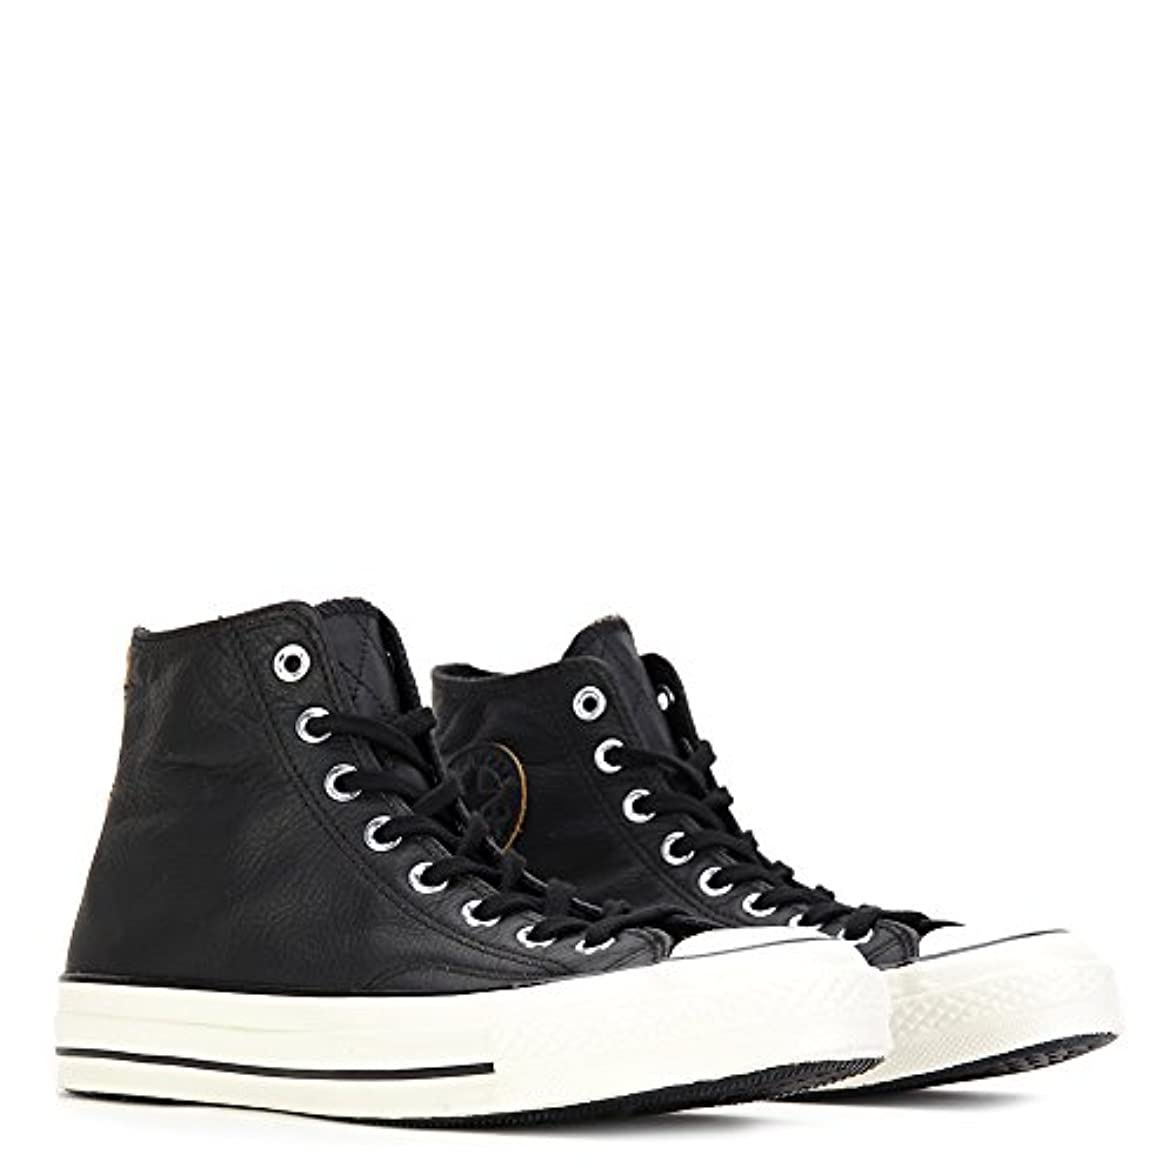 Converse Chuck Taylor All Star Hi 70 149534c